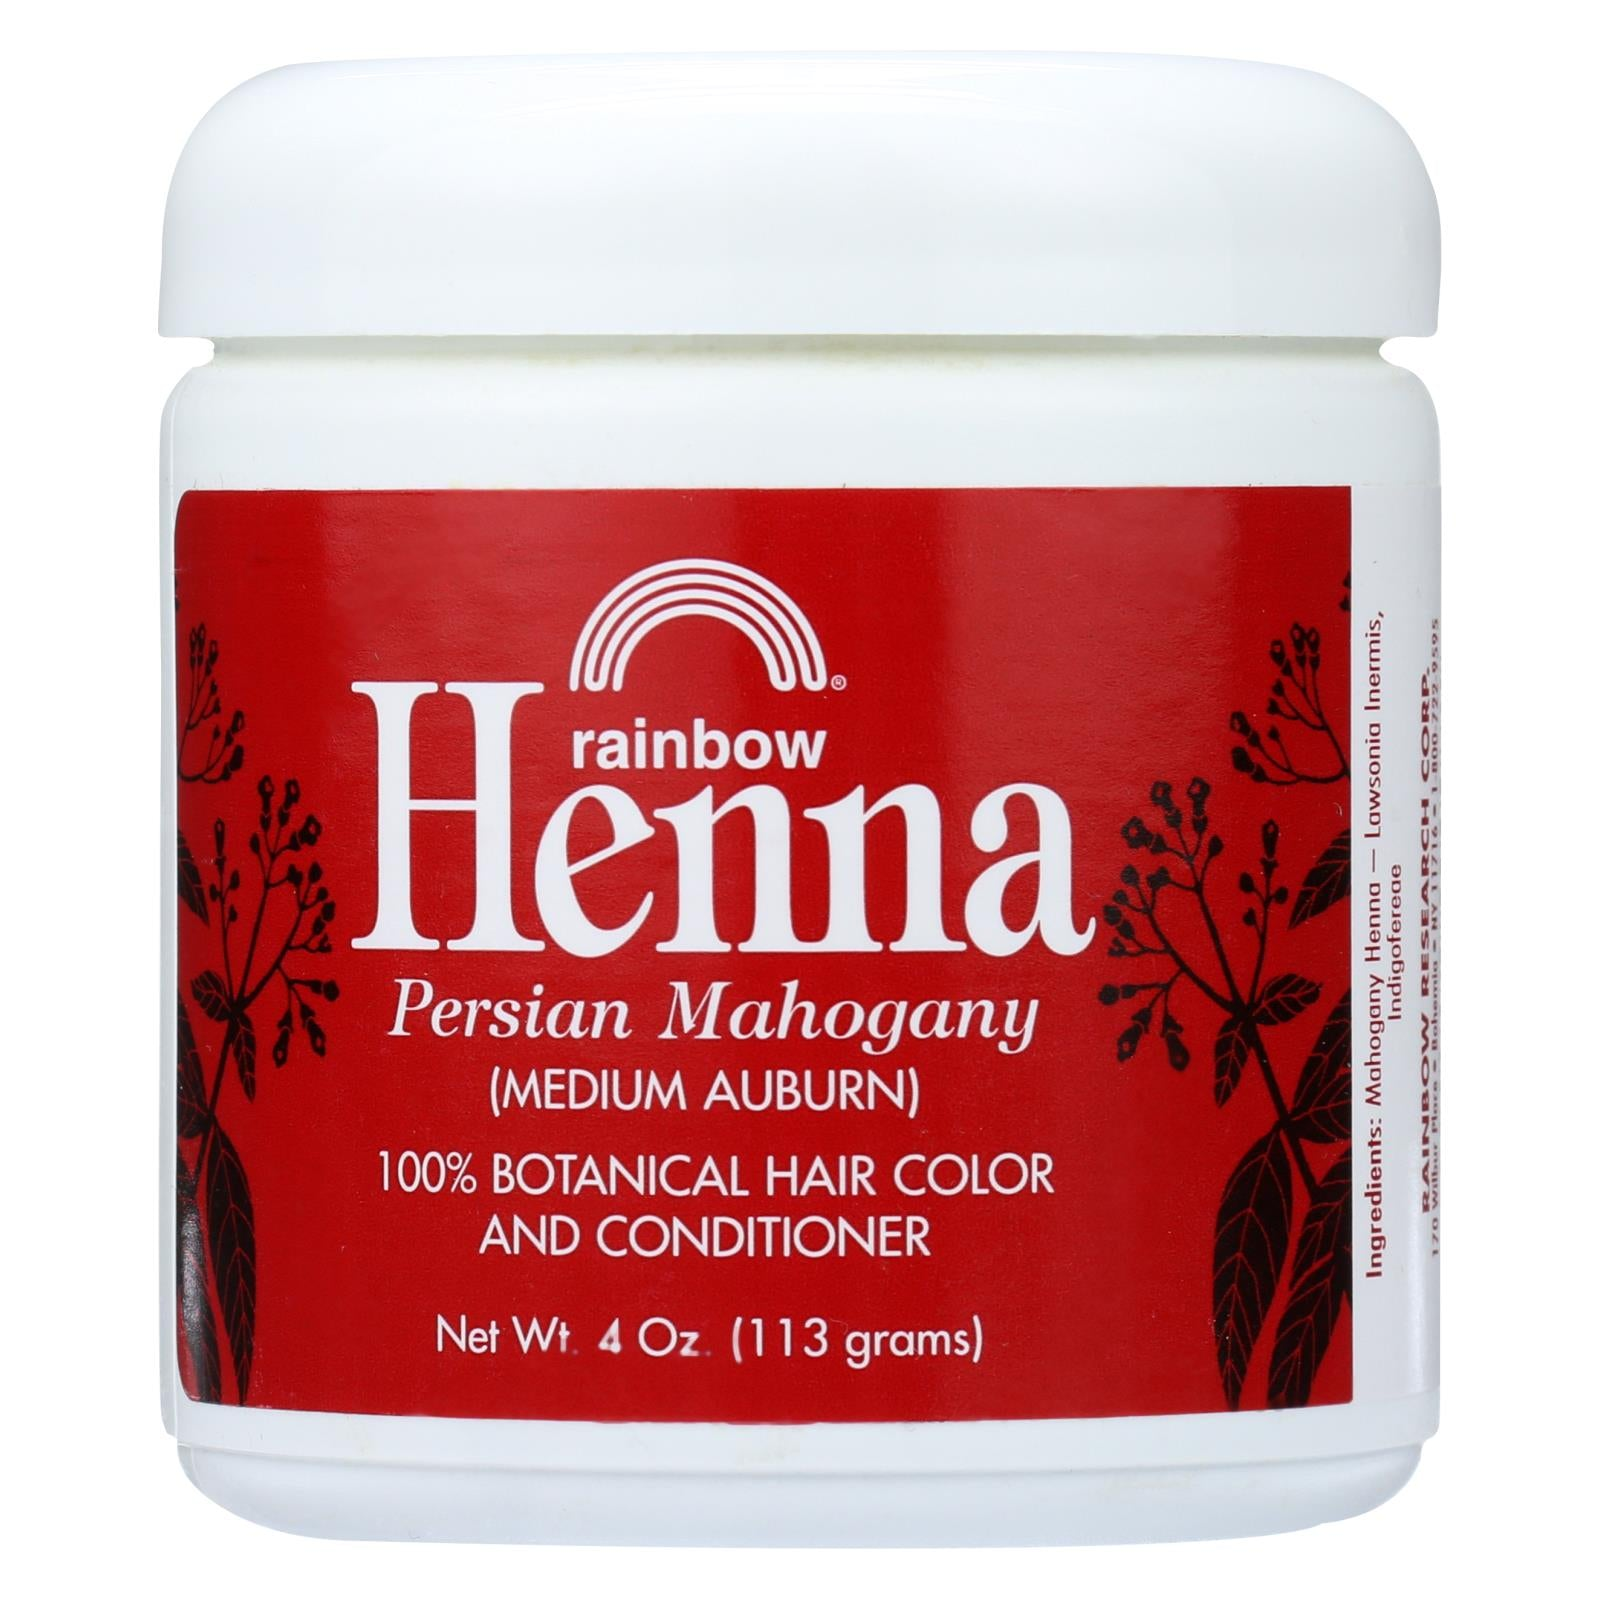 Buy Rainbow Research Henna Hair Color and Conditioner Persian Mahogany Medium Auburn - 4 oz - Hair Color from Veroeco.com